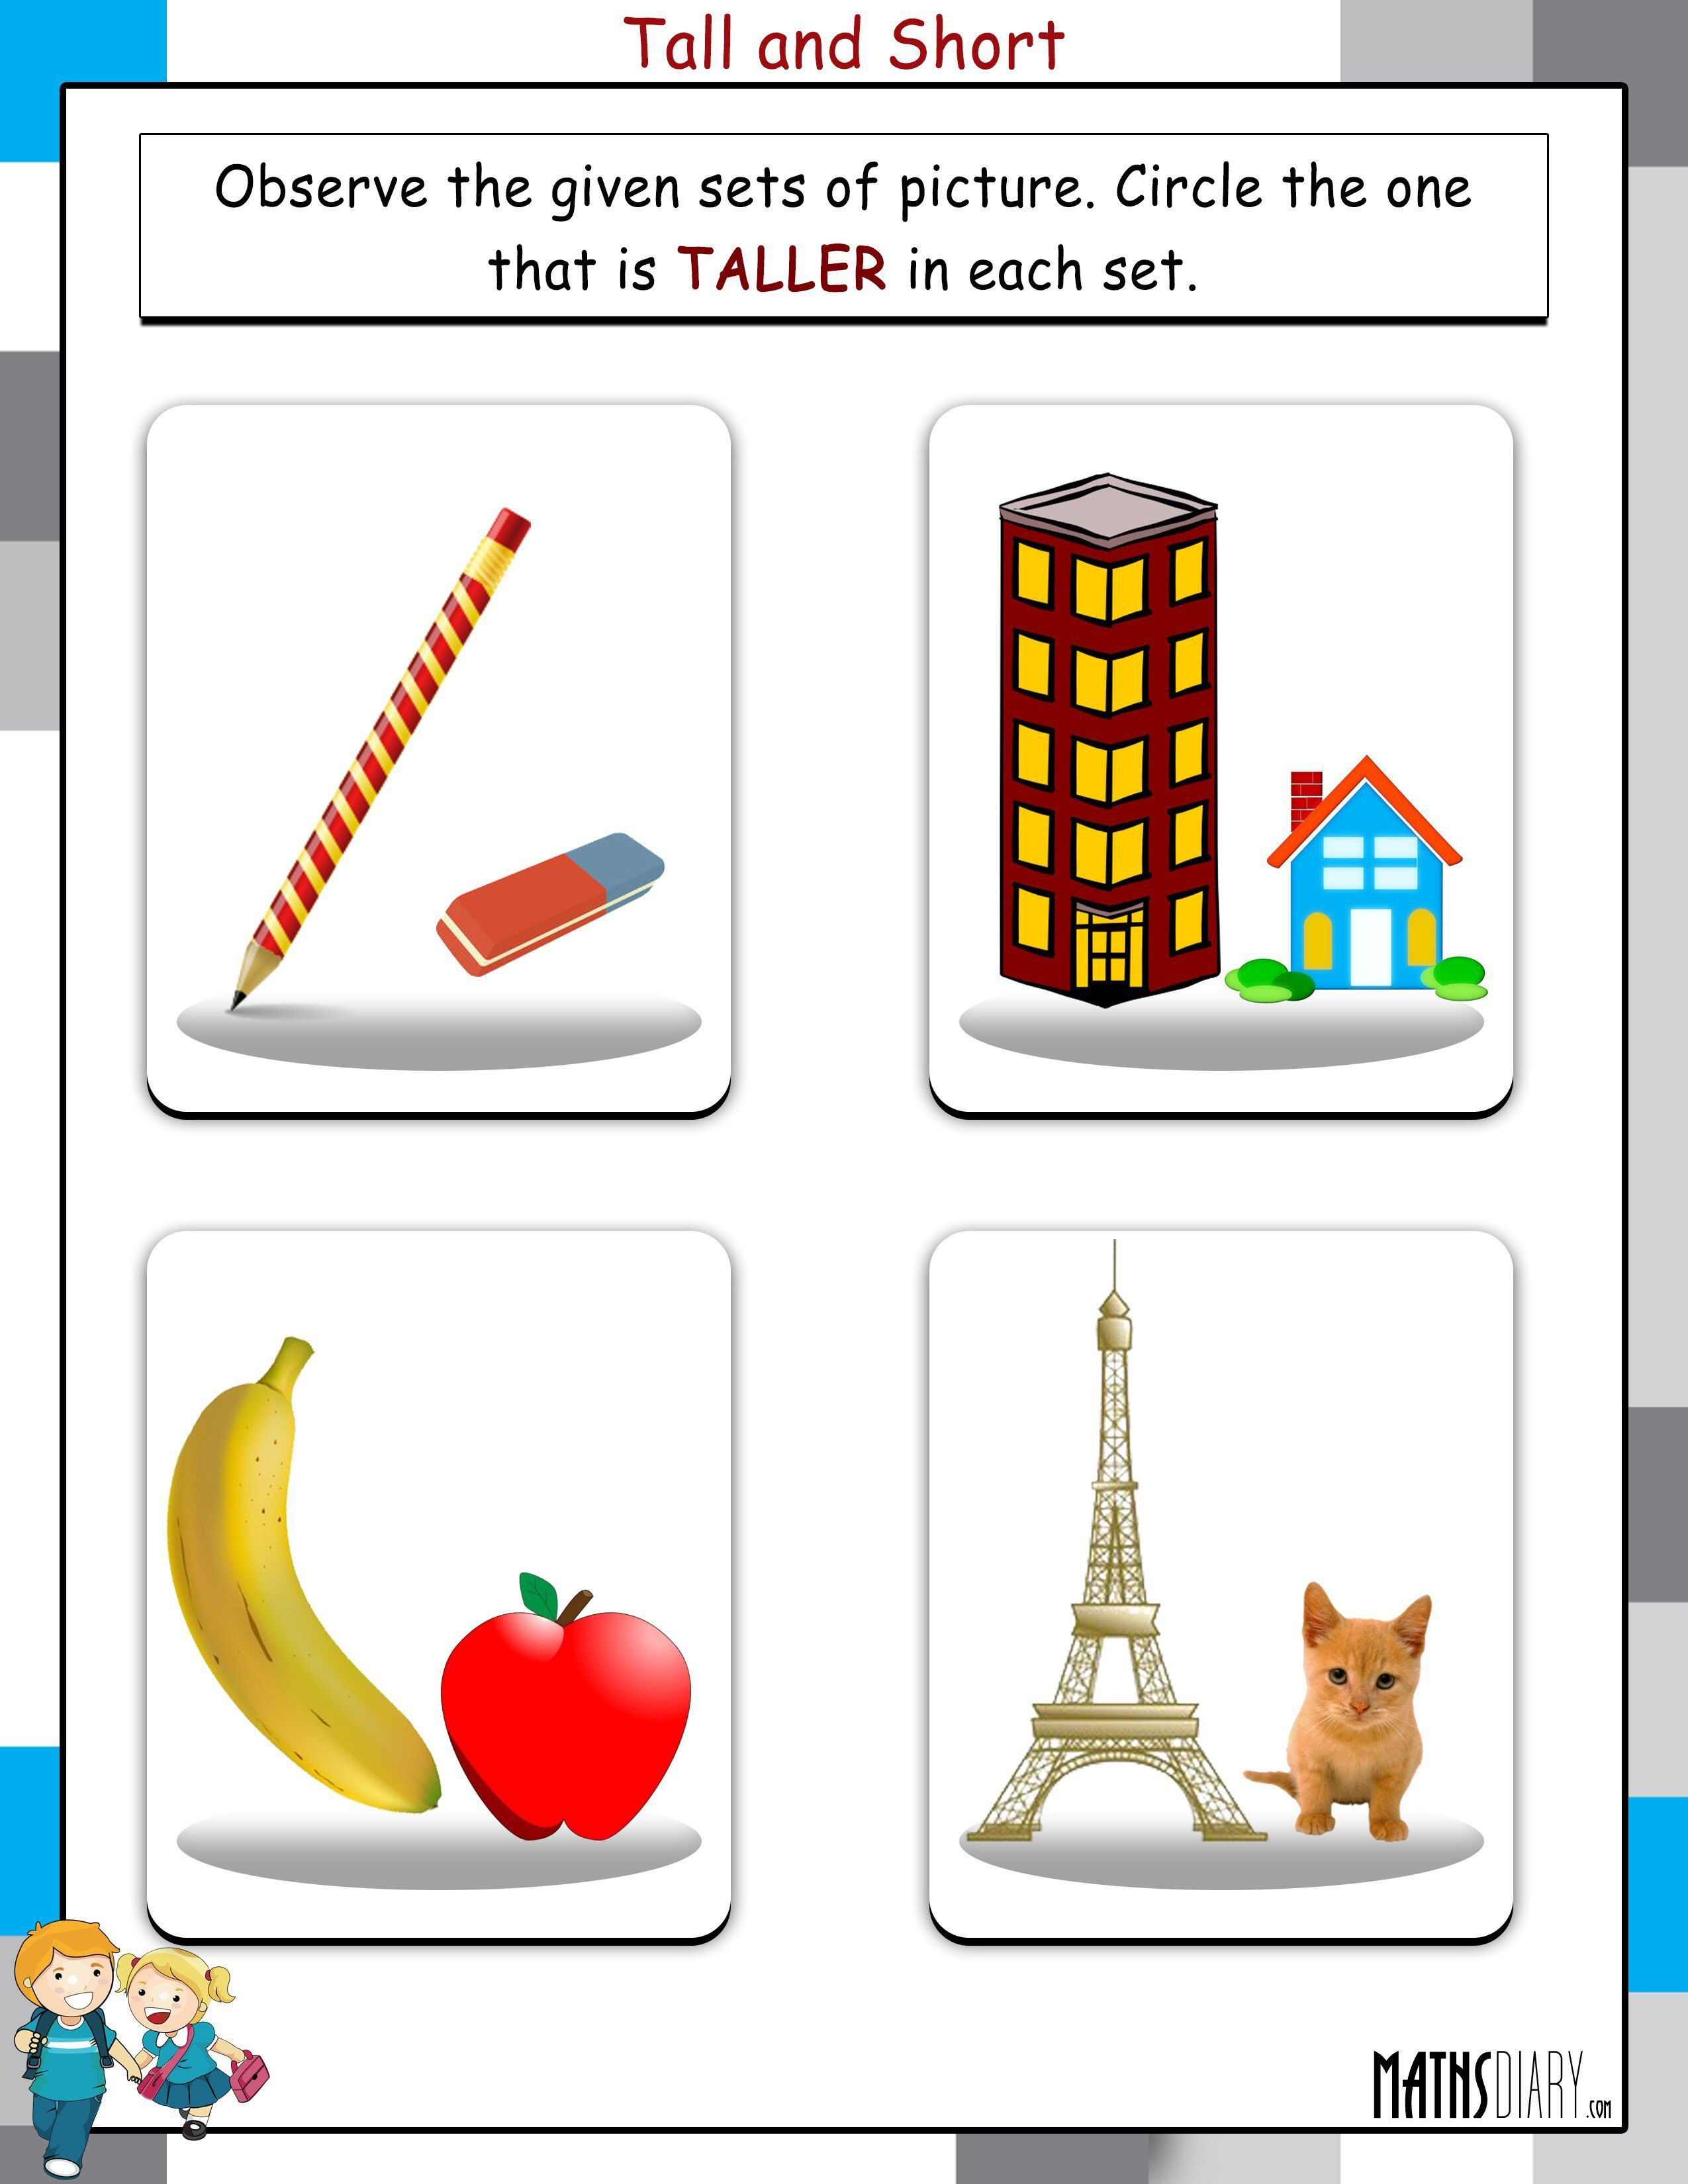 Image From Thsdiary Wp Content Uploads 07 Tall And Short Worksheet 1